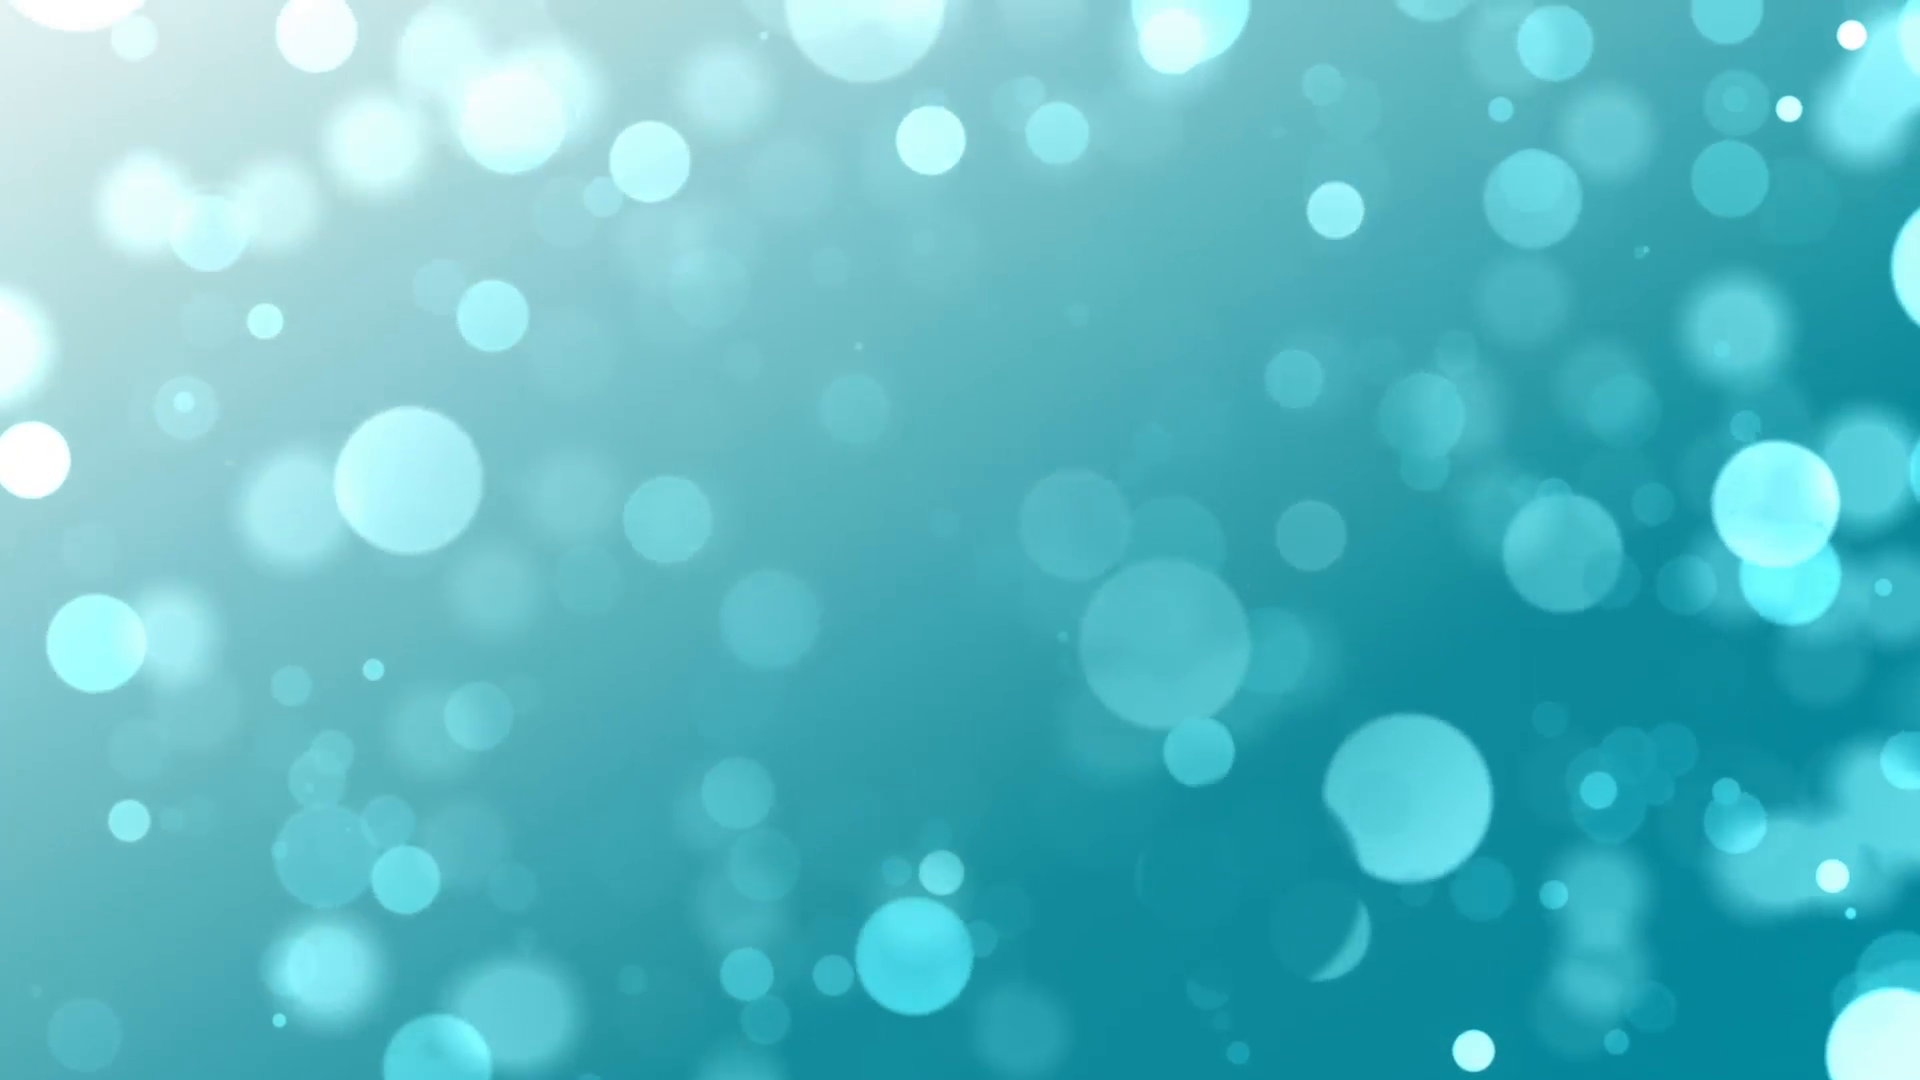 Free photo: Blue Bokeh Background - Blue, Bokeh, Bubbles ...